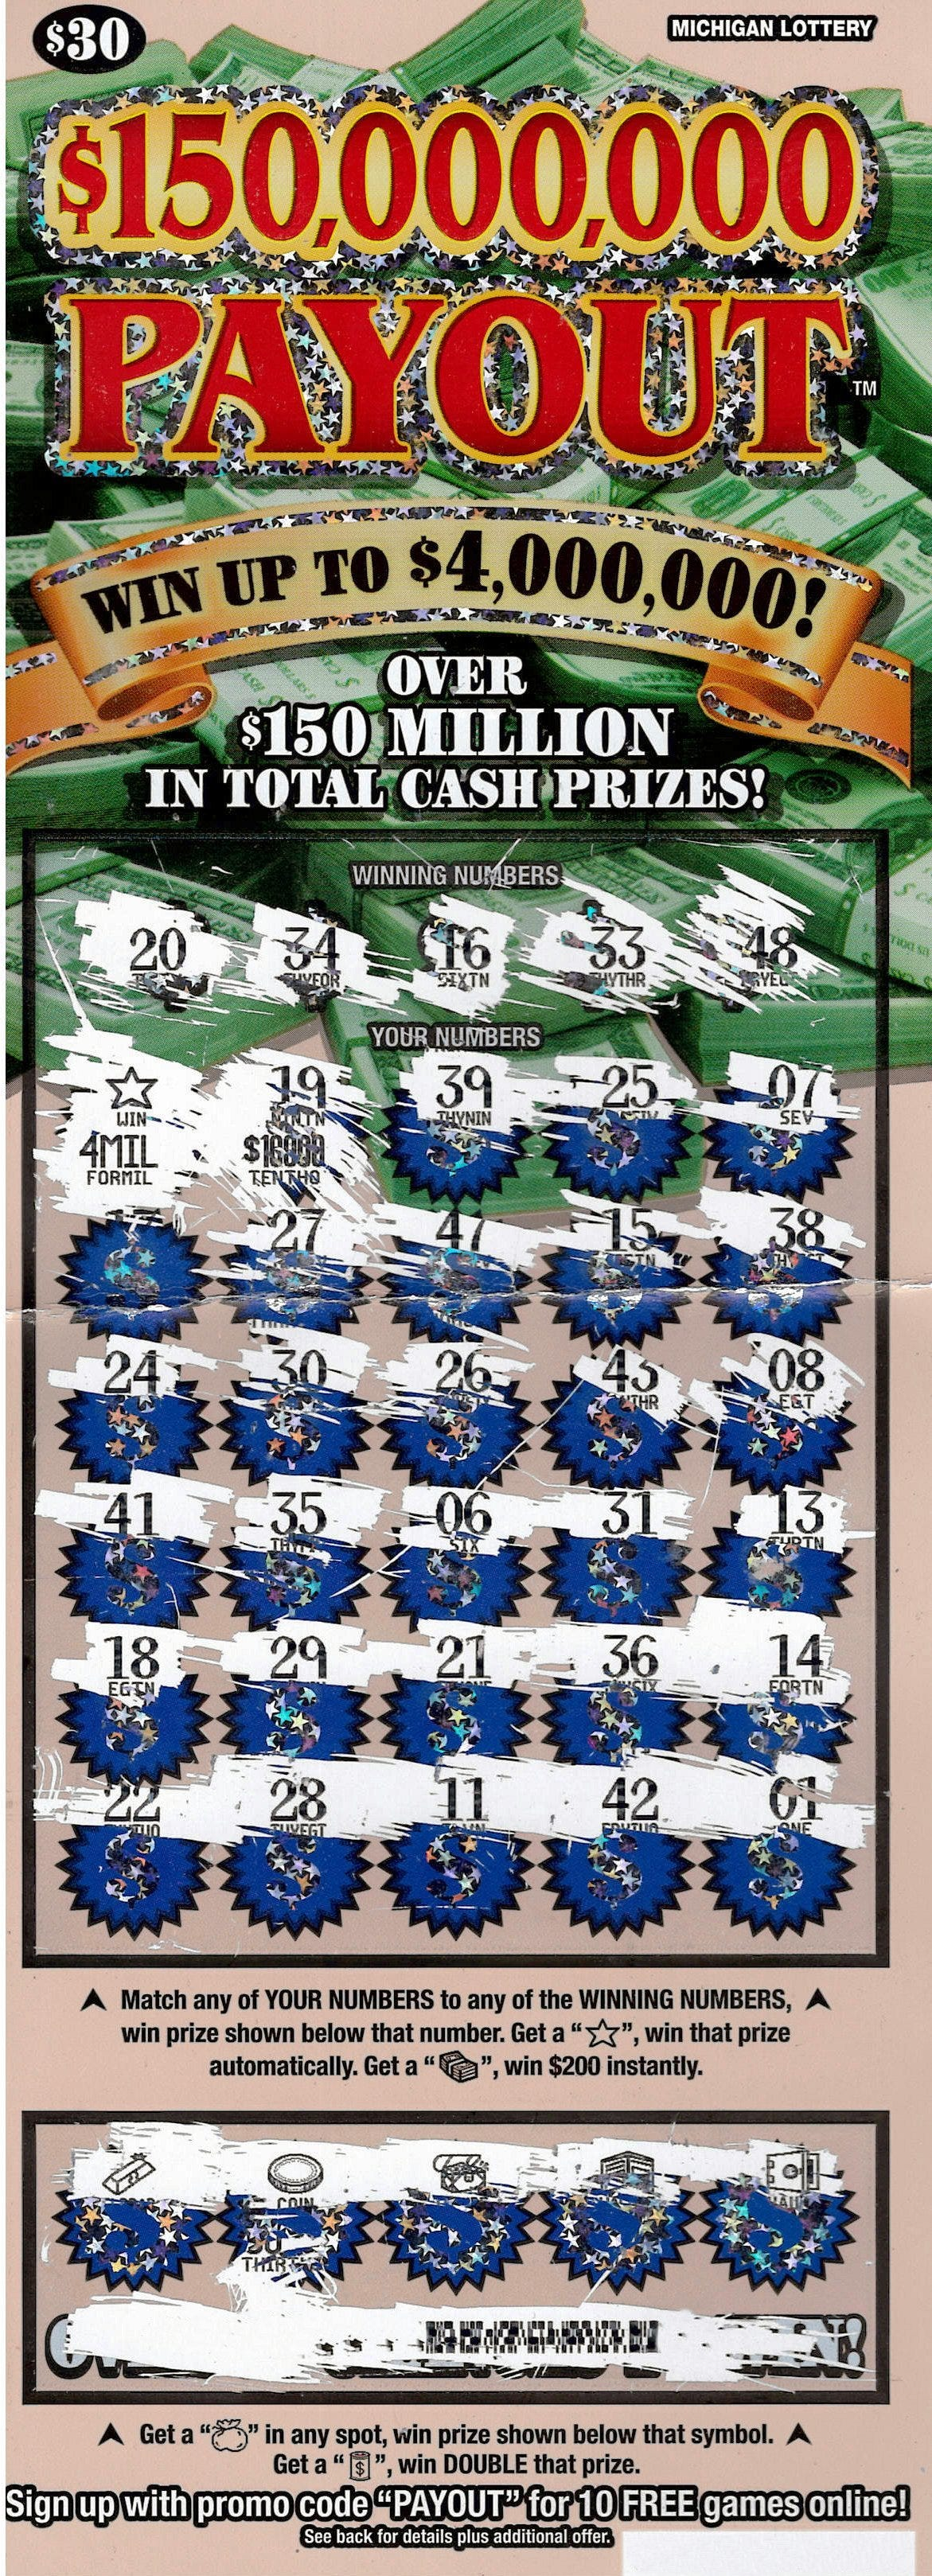 A Genesee County woman's $4-million winning Michigan instant lottery ticket.